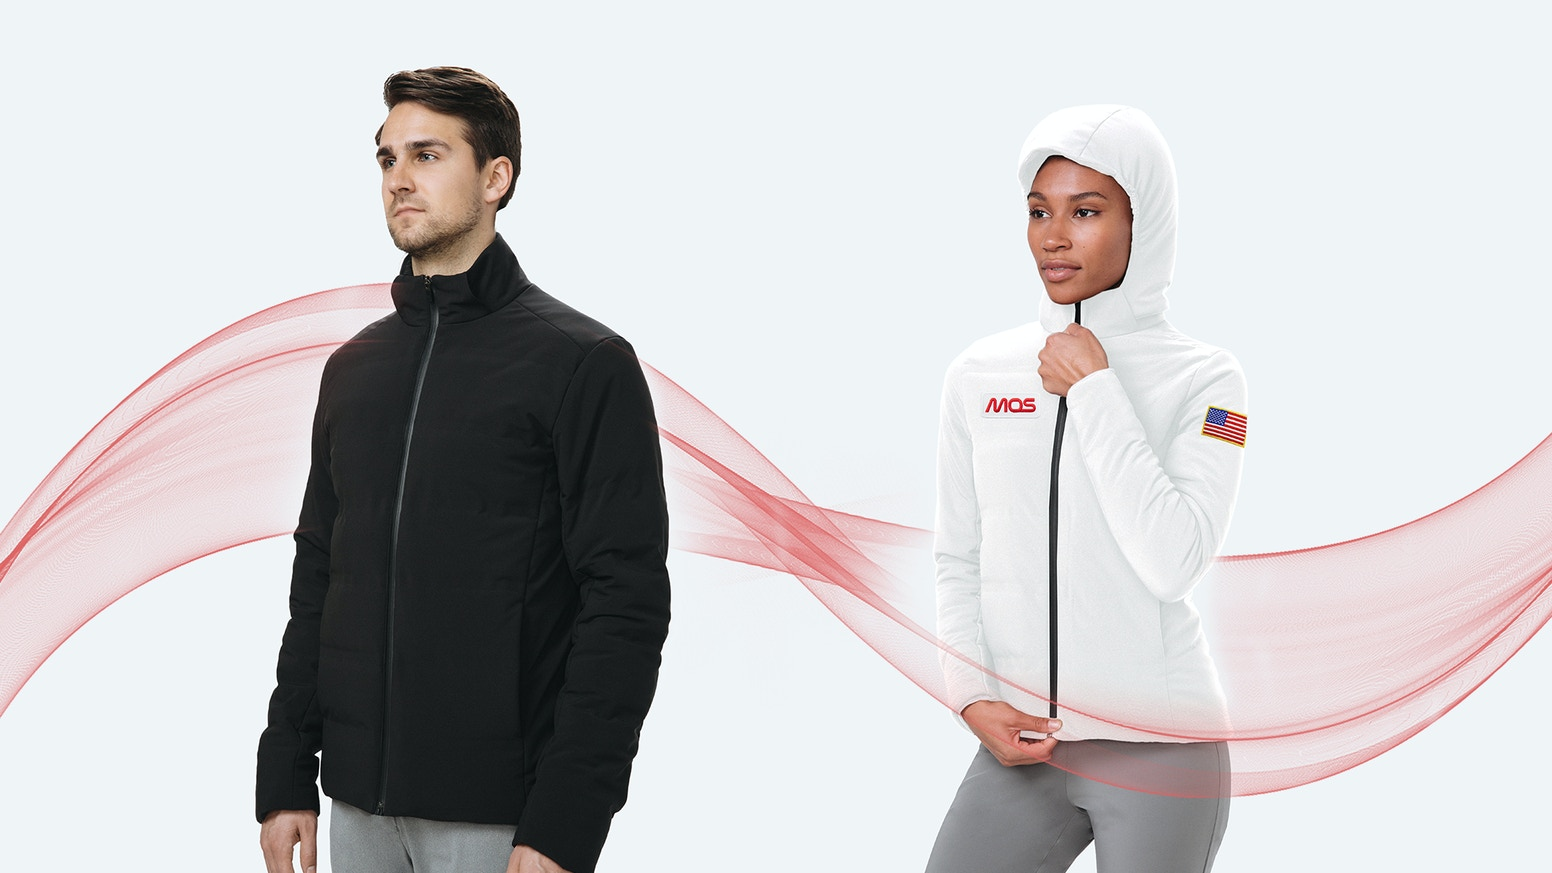 A functional, beautiful, everything-proof, voice-controlled jacket that learns and automatically heats to your optimal temperature.